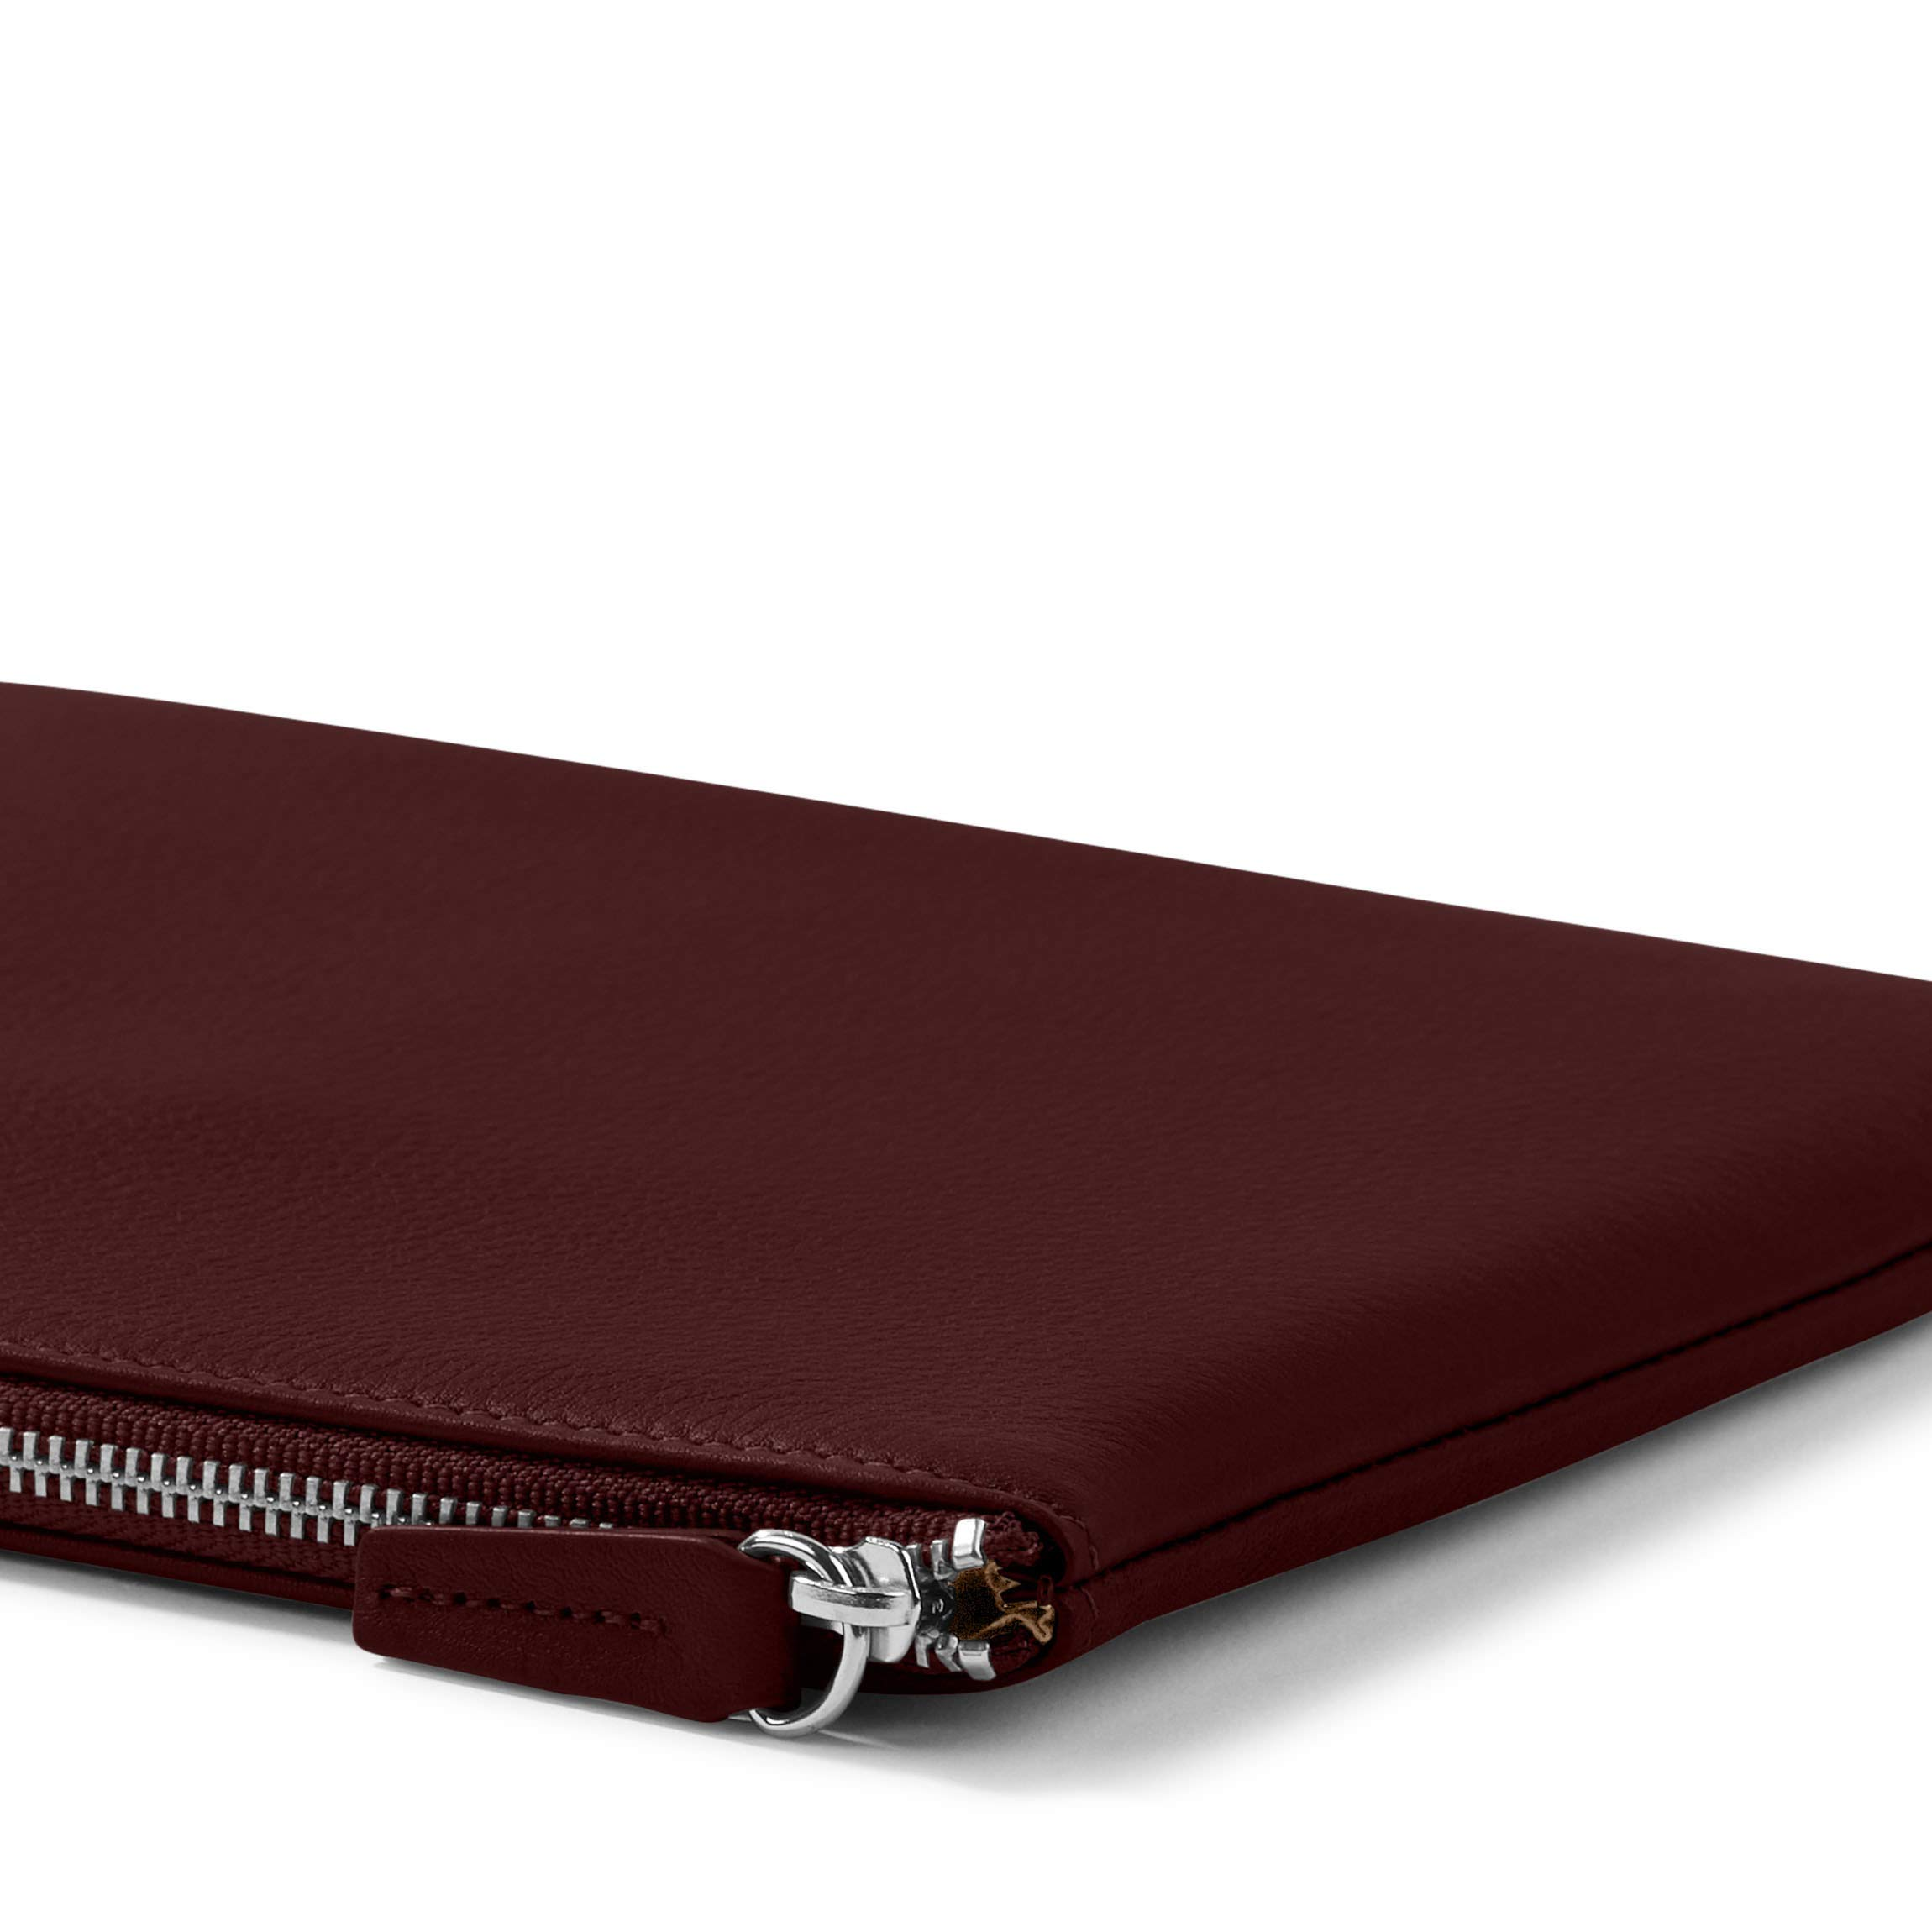 Medium Pouch - Full Grain Leather Leather - Bordeaux (Red) by Leatherology (Image #3)